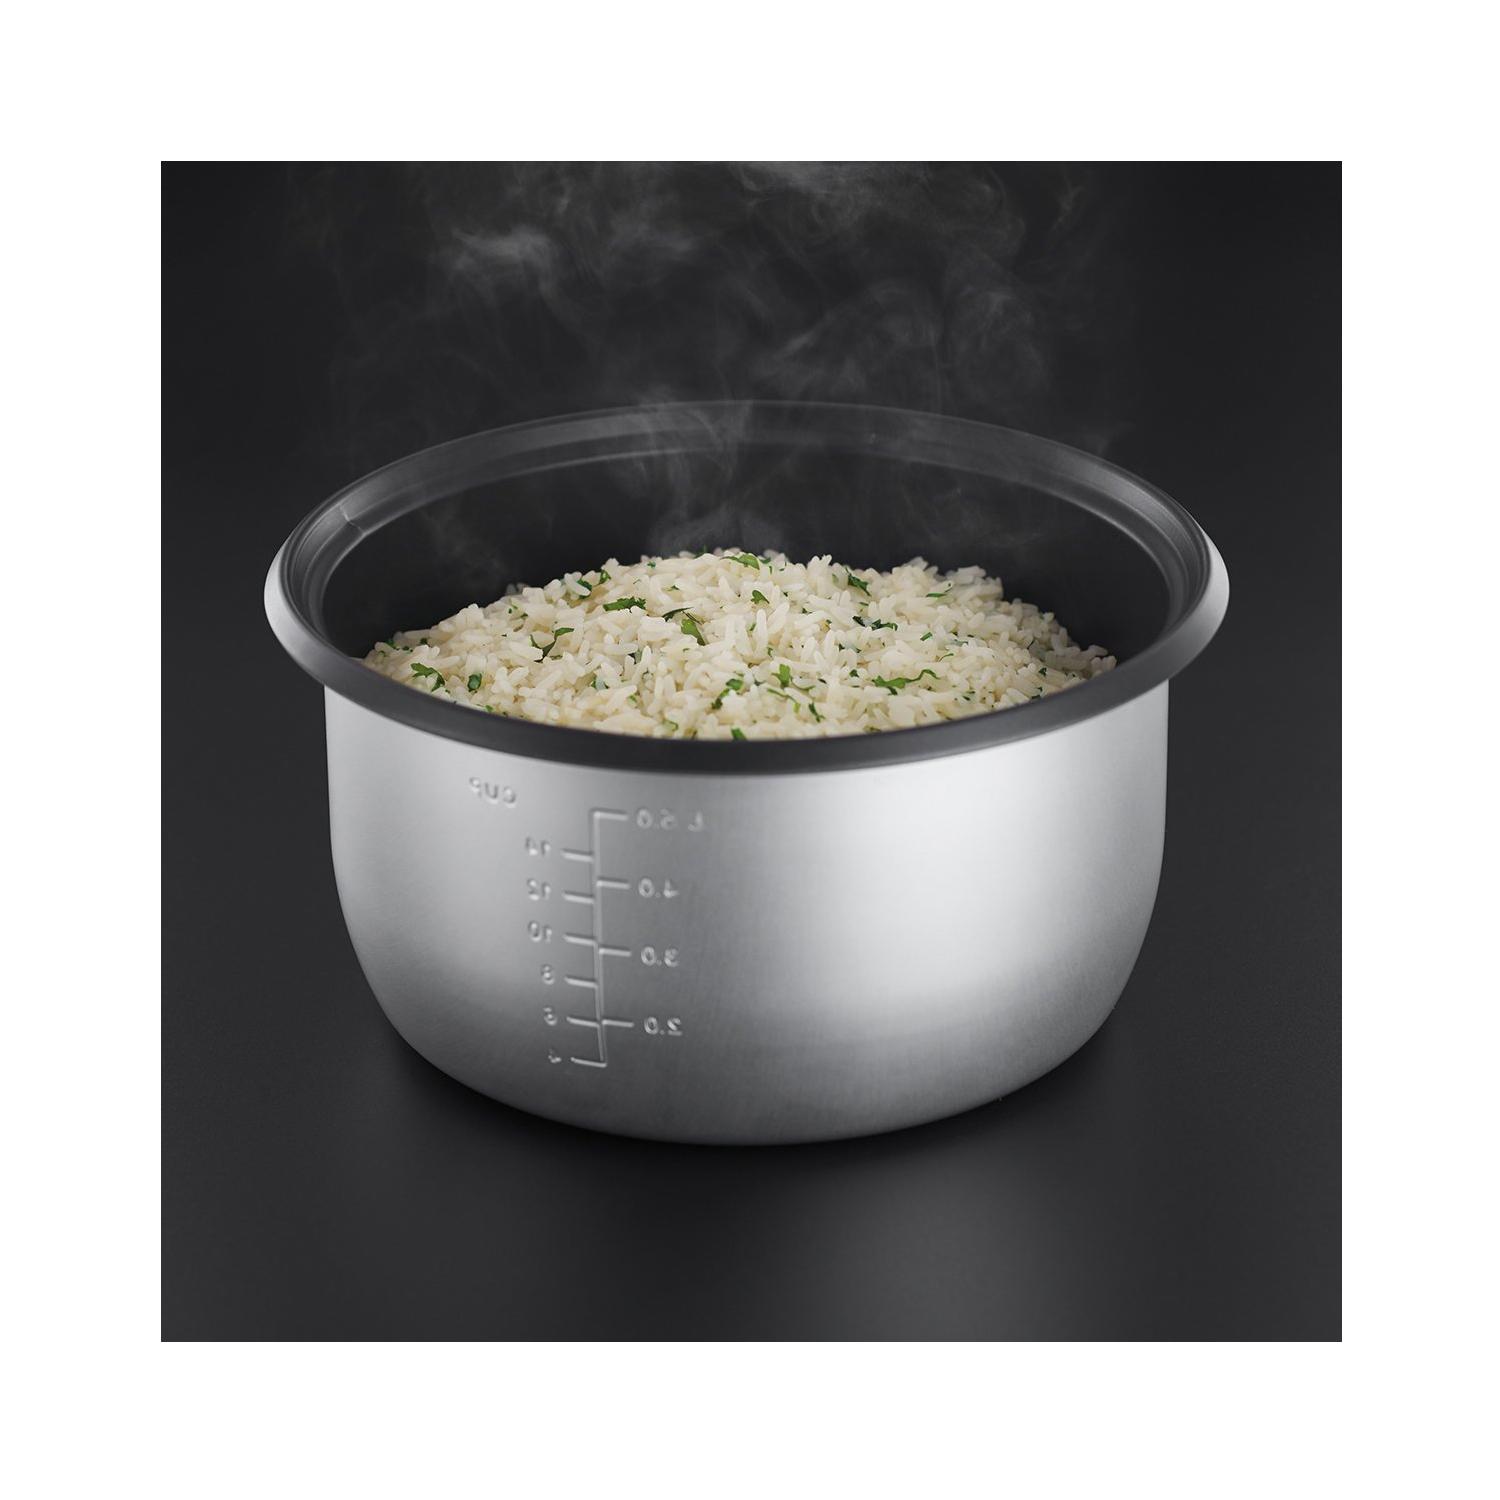 Russell Hobbs 14 Cup MaxiCook Rice Cooker 3